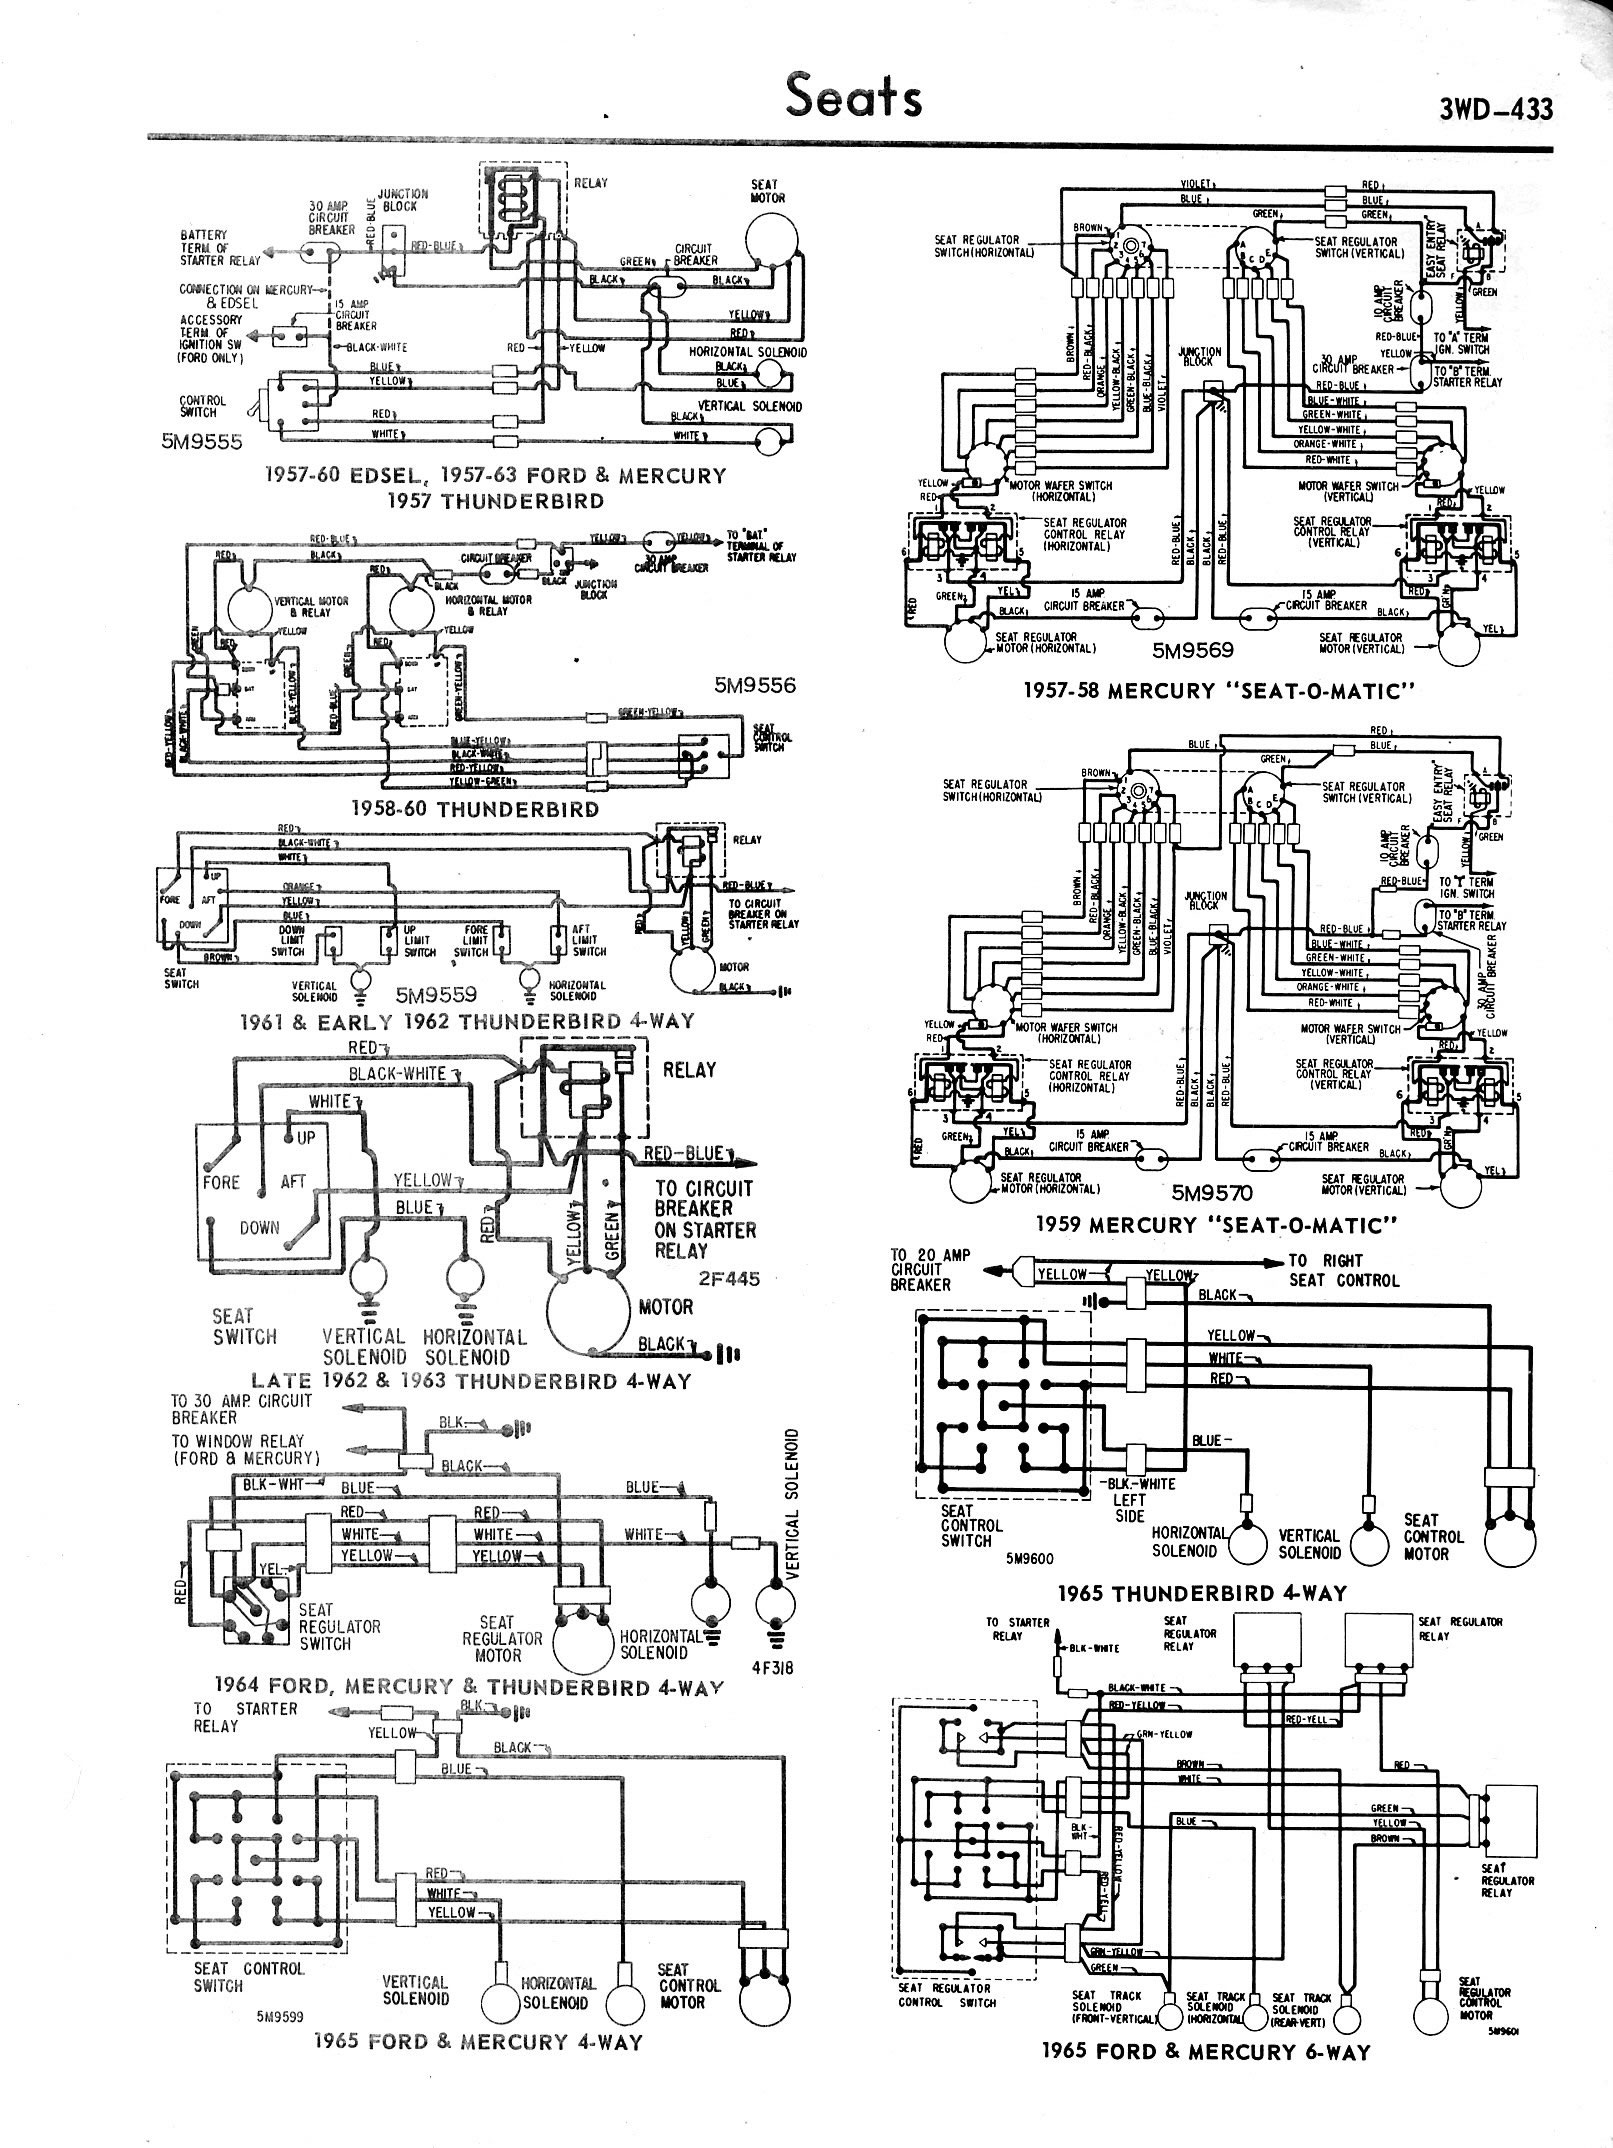 Ford Diagrams on turn signal capacitor, turn up txt, turn signal cruise control, turn signal connectors, turn signal troubleshooting, turn signals for rhino, simple turn signal schematic, turn signal timer, turn signal repair, turn signal switch schematic, turn signal relay, turn signals chrome glow, turn signals wiring in old cars, 1991 ford explorer schematic, harley turn signal schematic, turn signal fuse, signal generator schematic, turn signal hood, signal flasher schematic, turn signal wire,